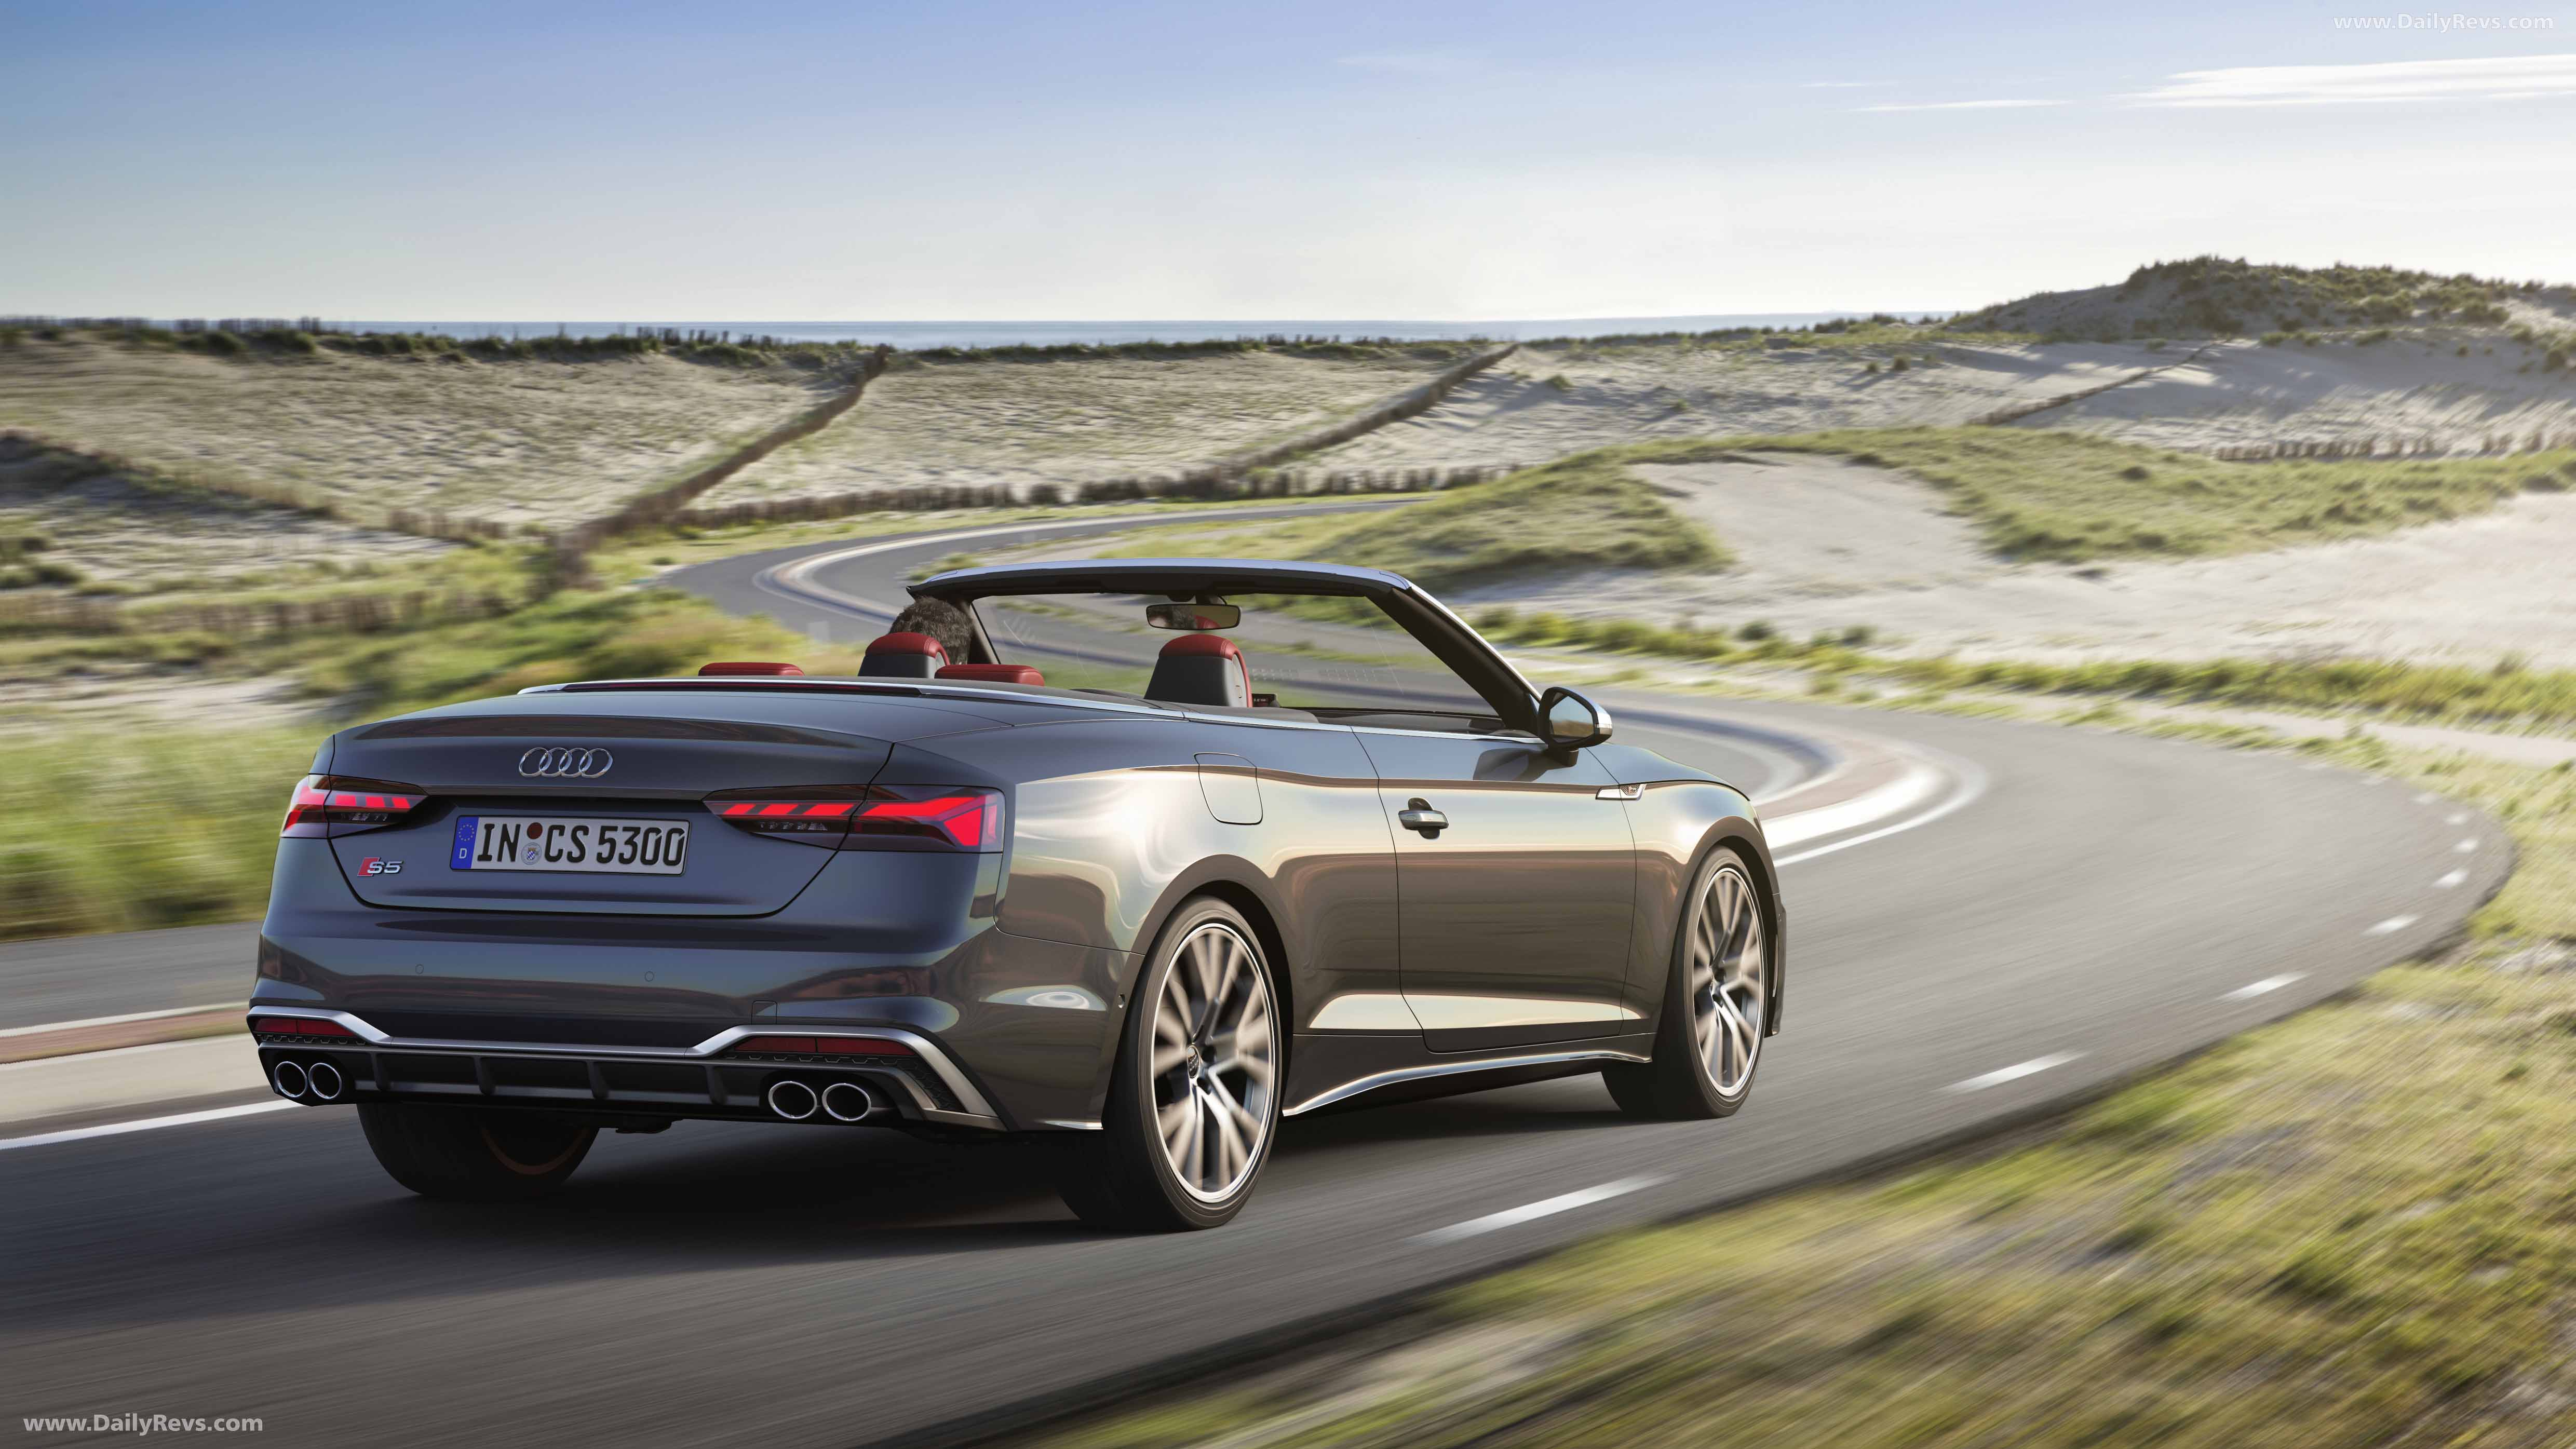 2020 Audi S5 Cabriolet TFSI - HD Pictures, Videos, Specs ...